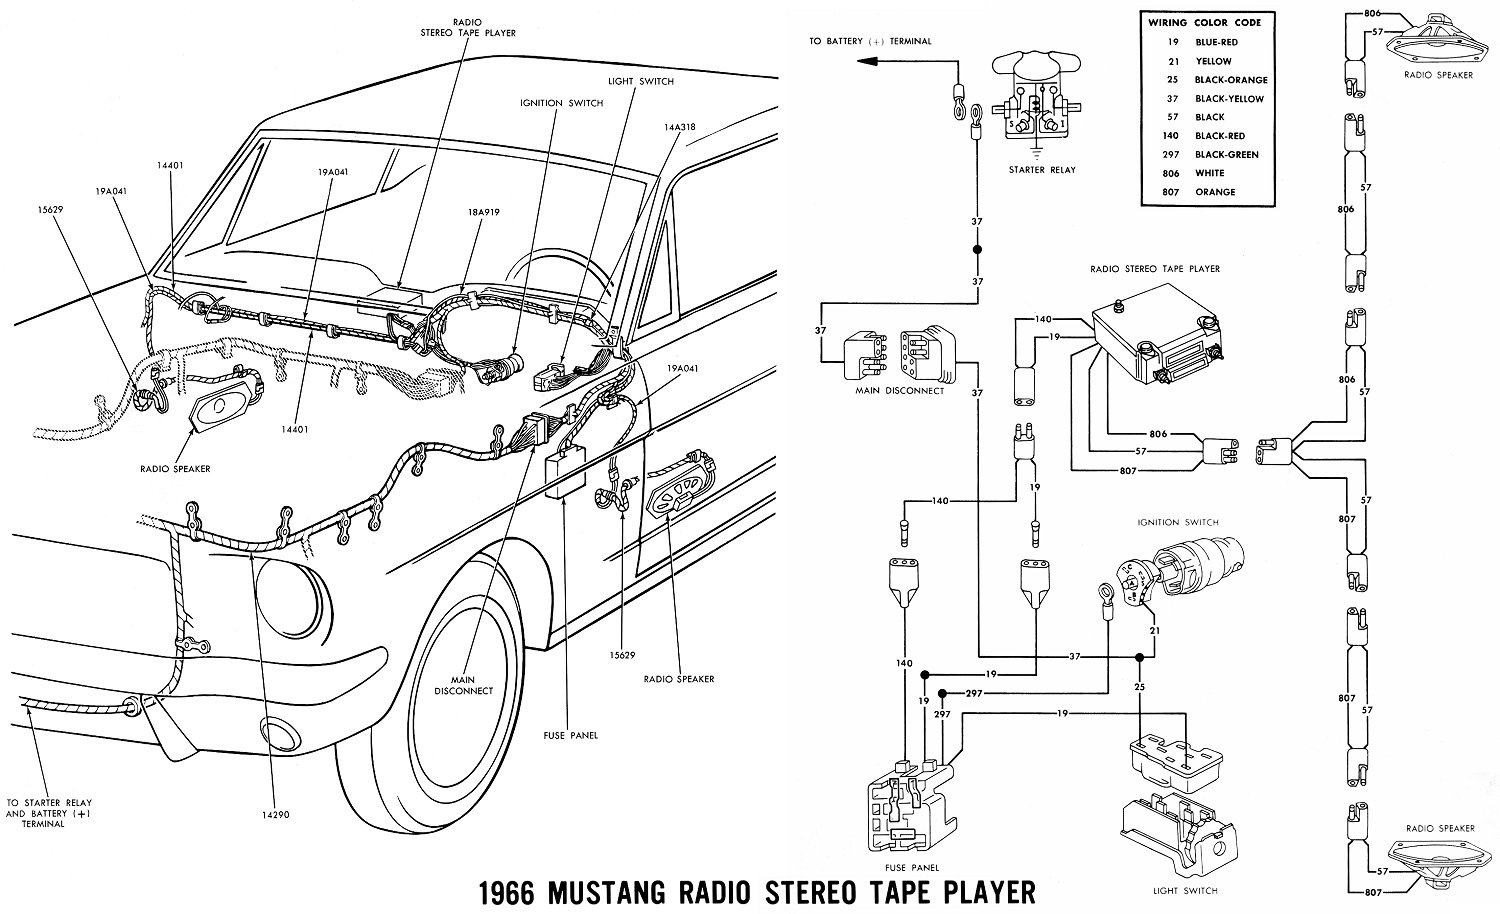 1969 mustang fuse panel diagram wiring data rh unroutine co  66 mustang fuse box diagram